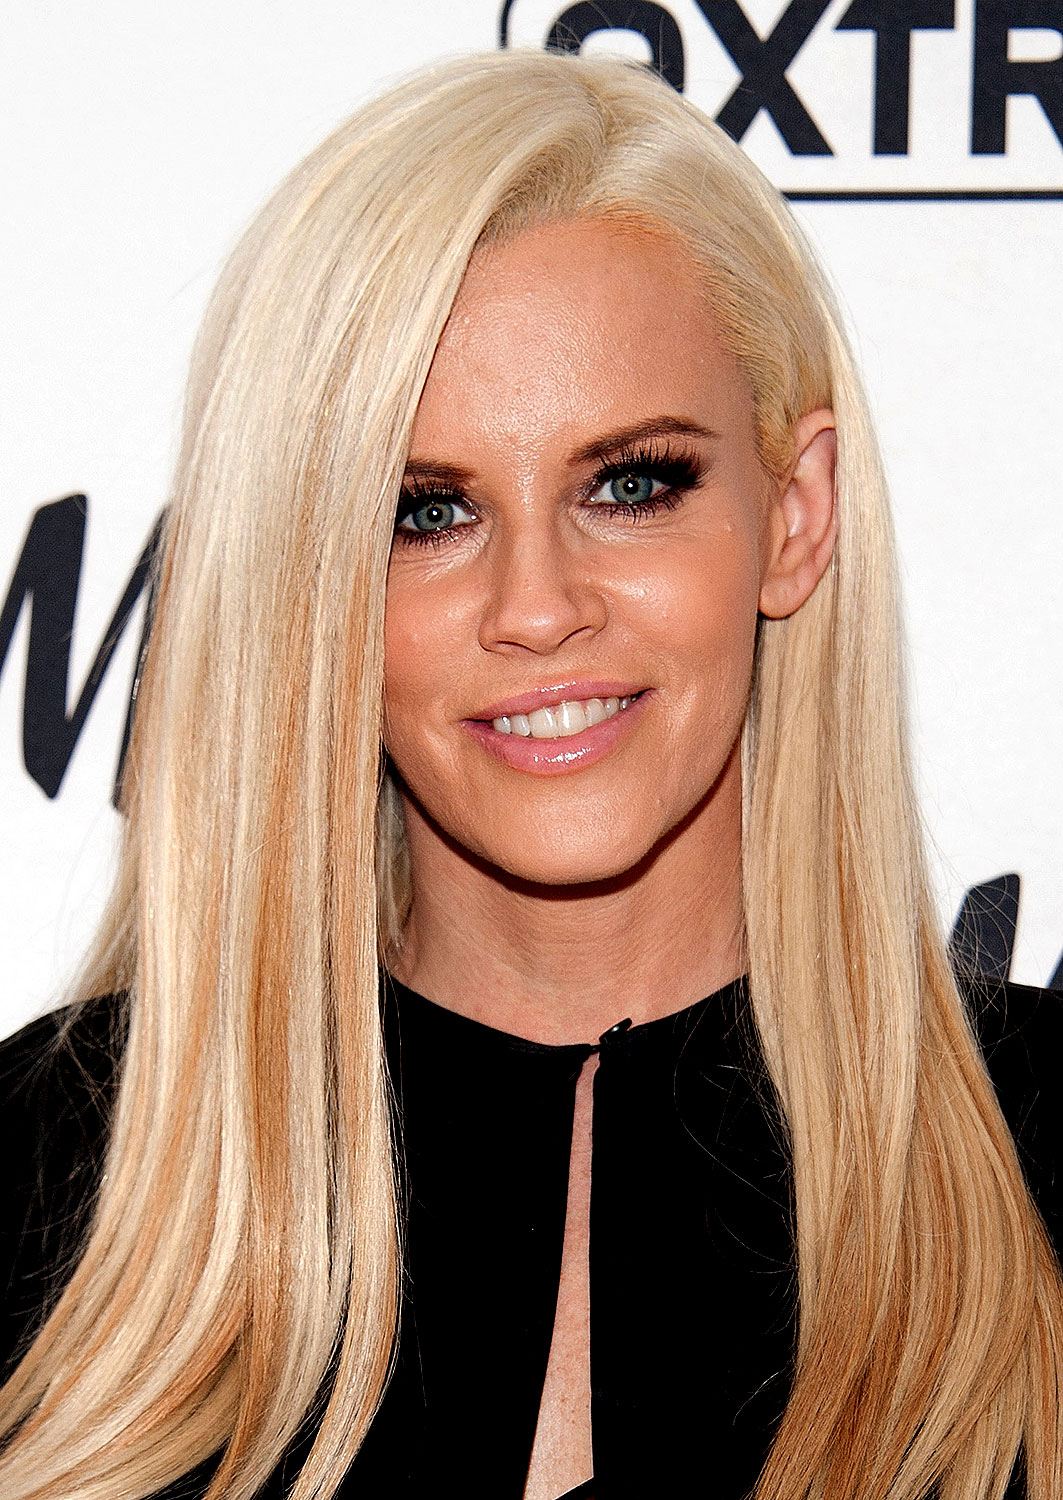 Jenny Mccarthy Porn Video celebs you never knew had x-rated pasts